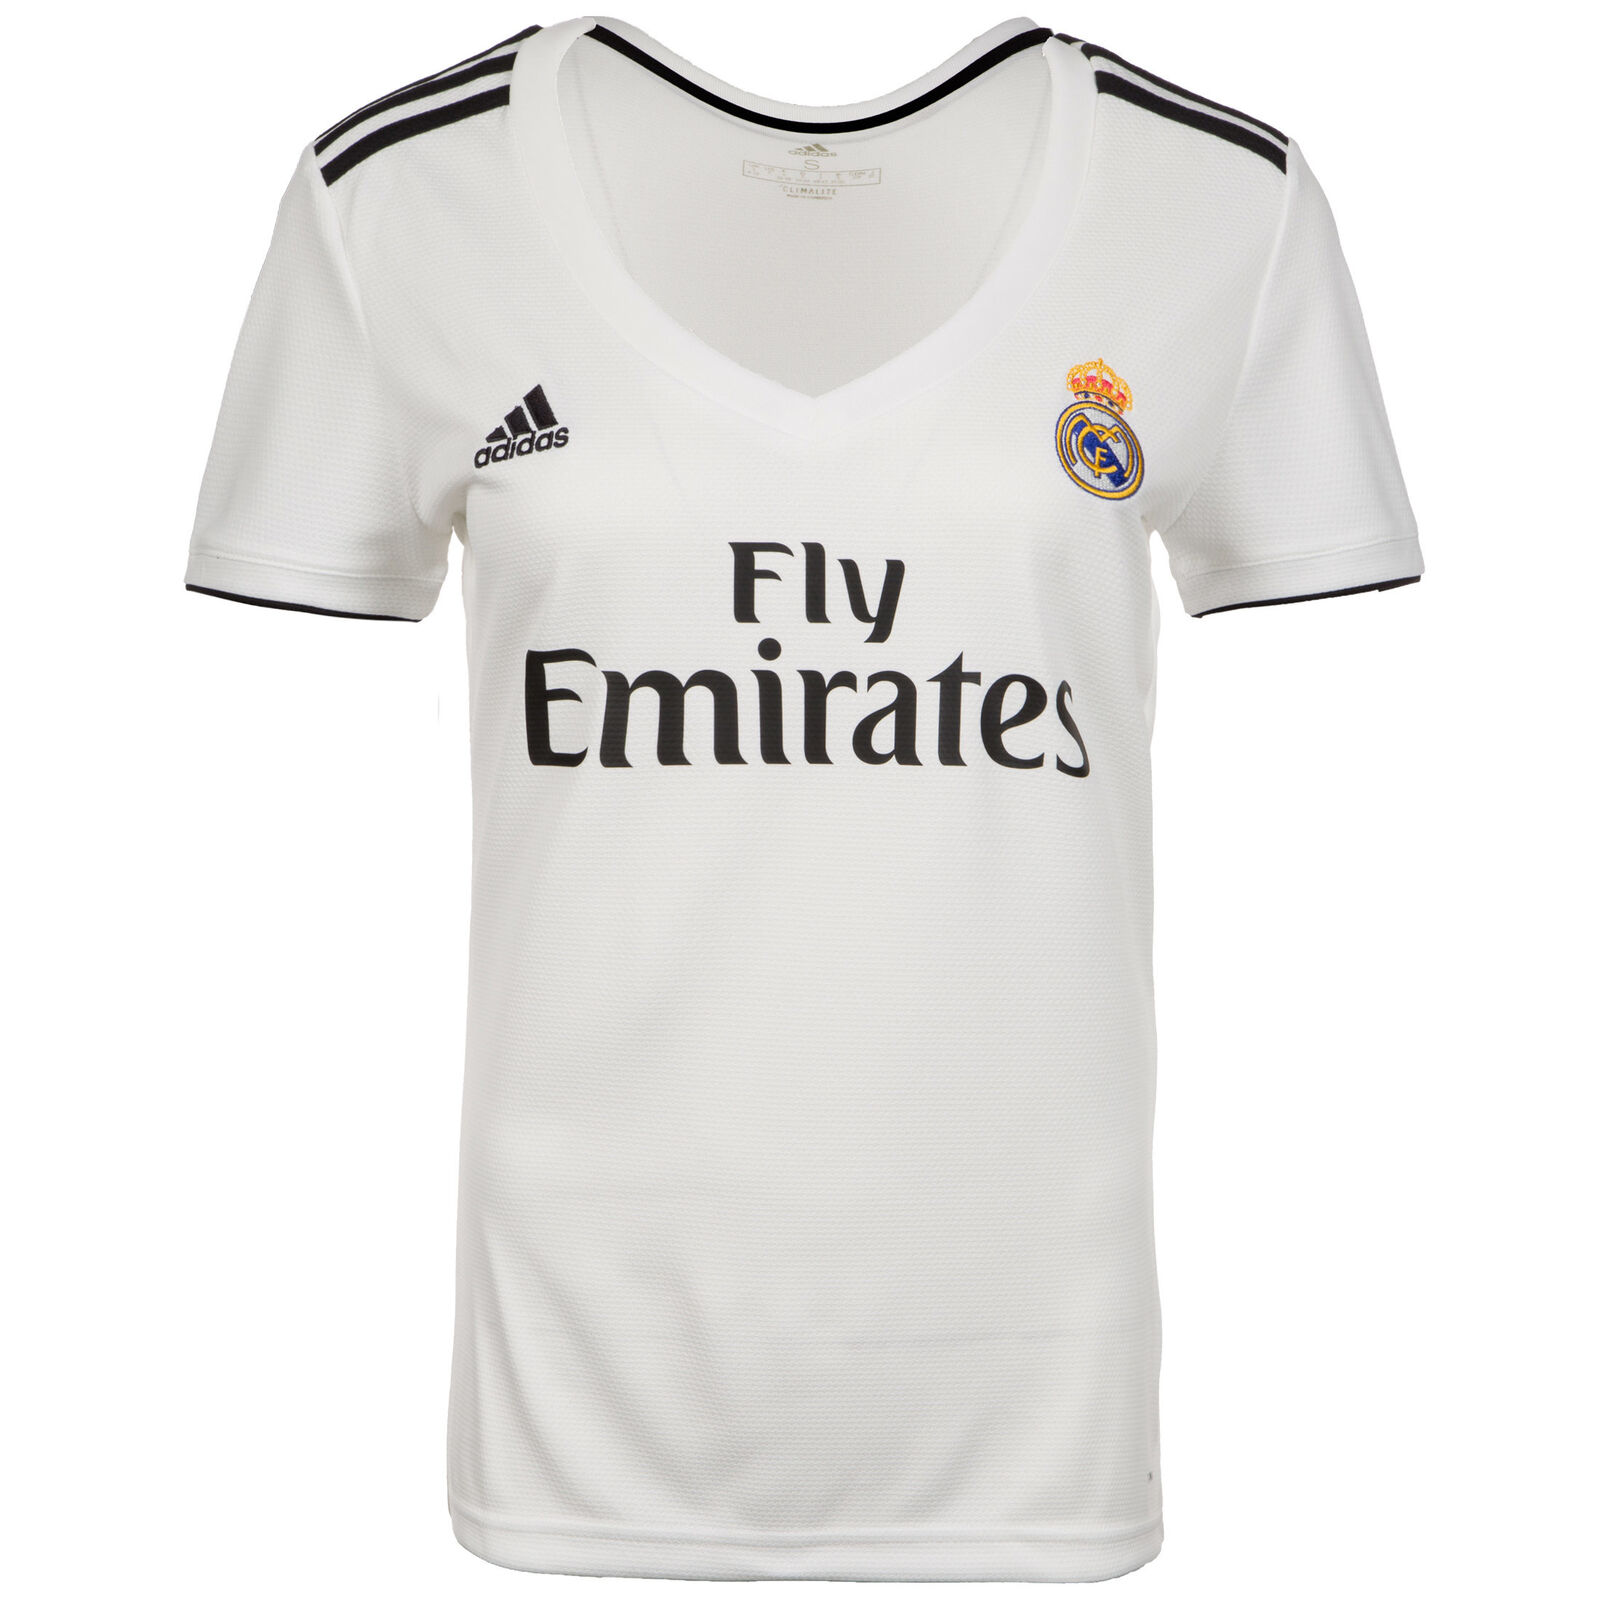 Adidas Performance Real Madrid Trikot Home 2018 2019 2019 2019 Damen Weiß NEU e5c30a